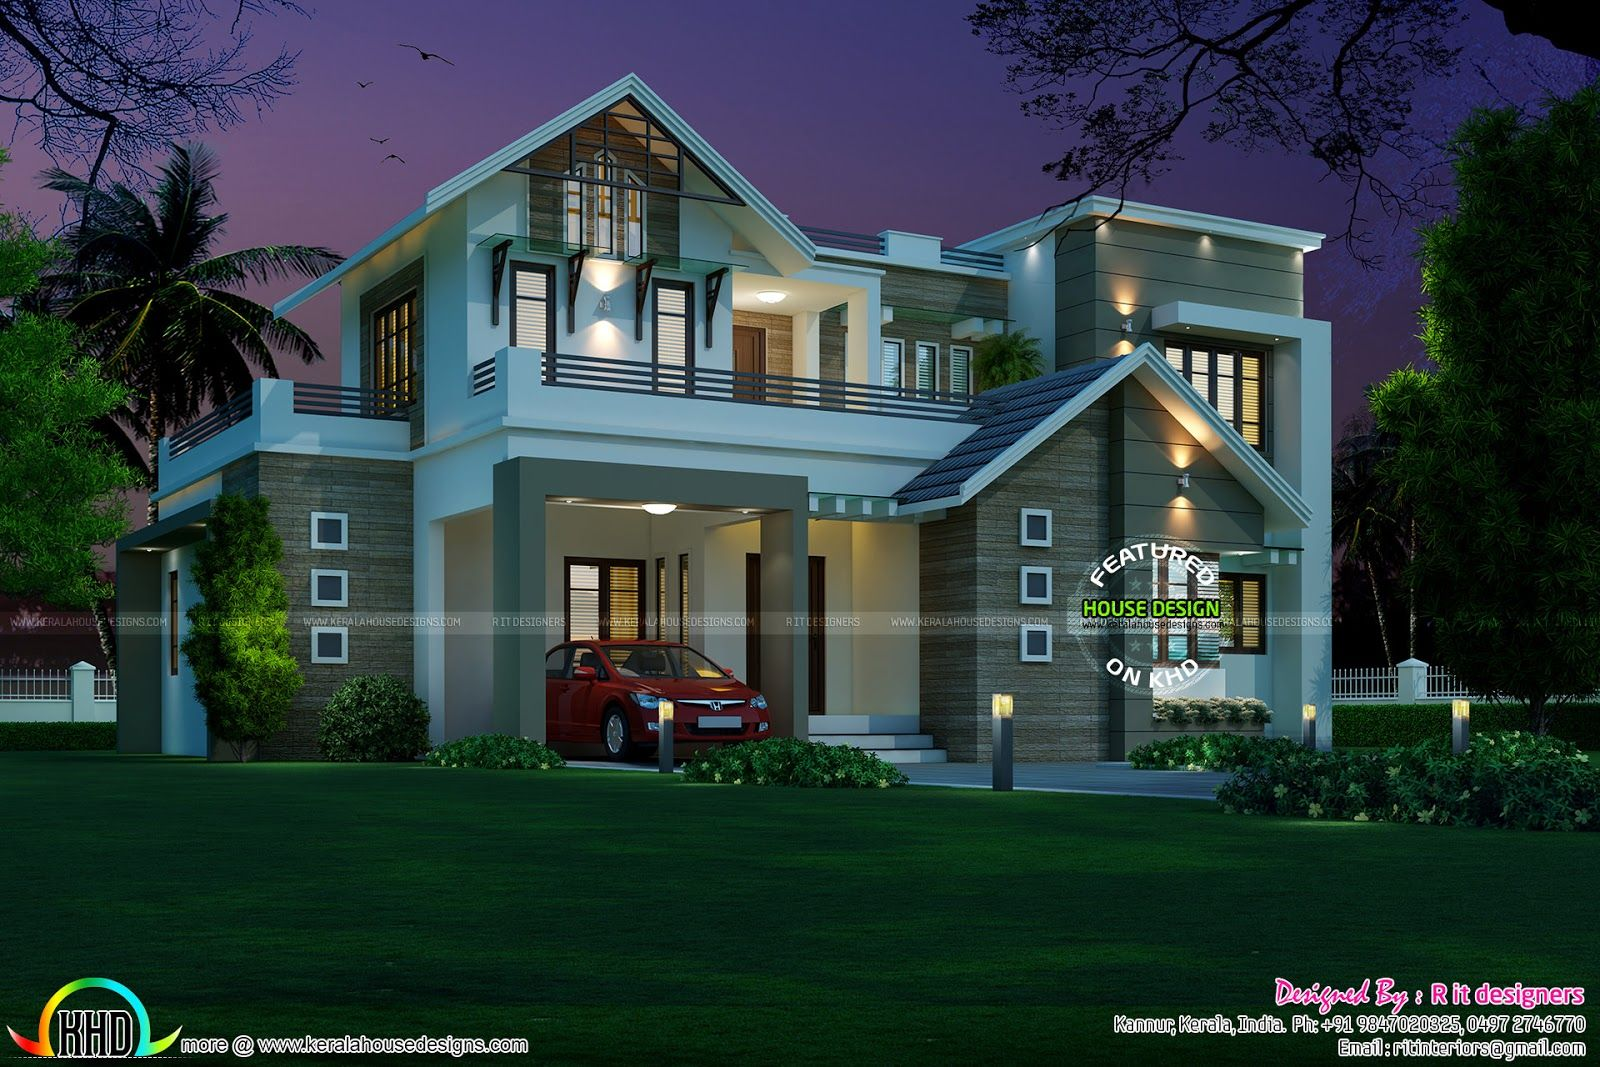 2156 Sq Ft Sloping Roof Mix Home Duplex House Design Model House Plan House Roof Design